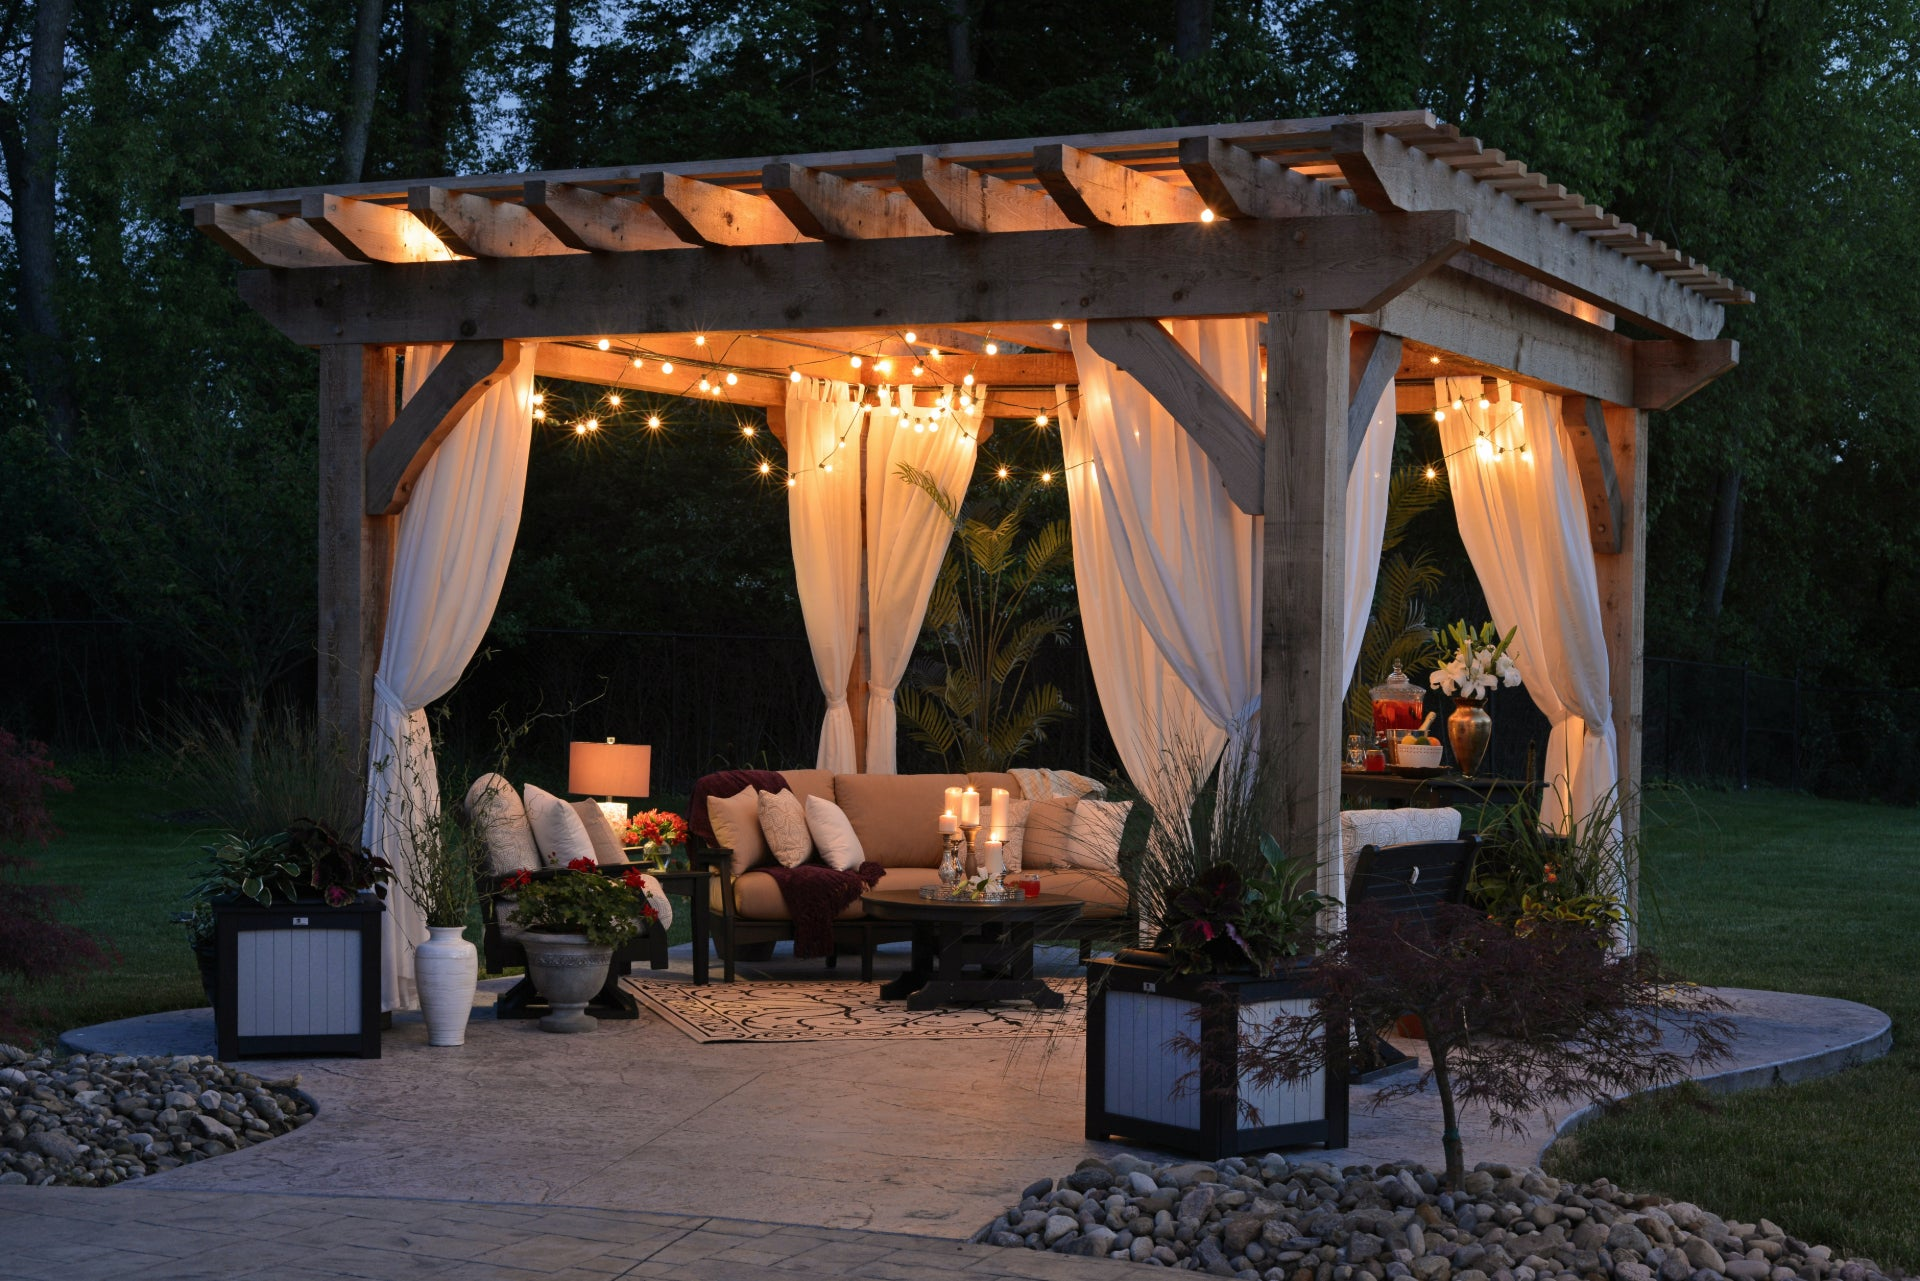 Backyard Getaway Pergola with Curtains and Fairy Lights